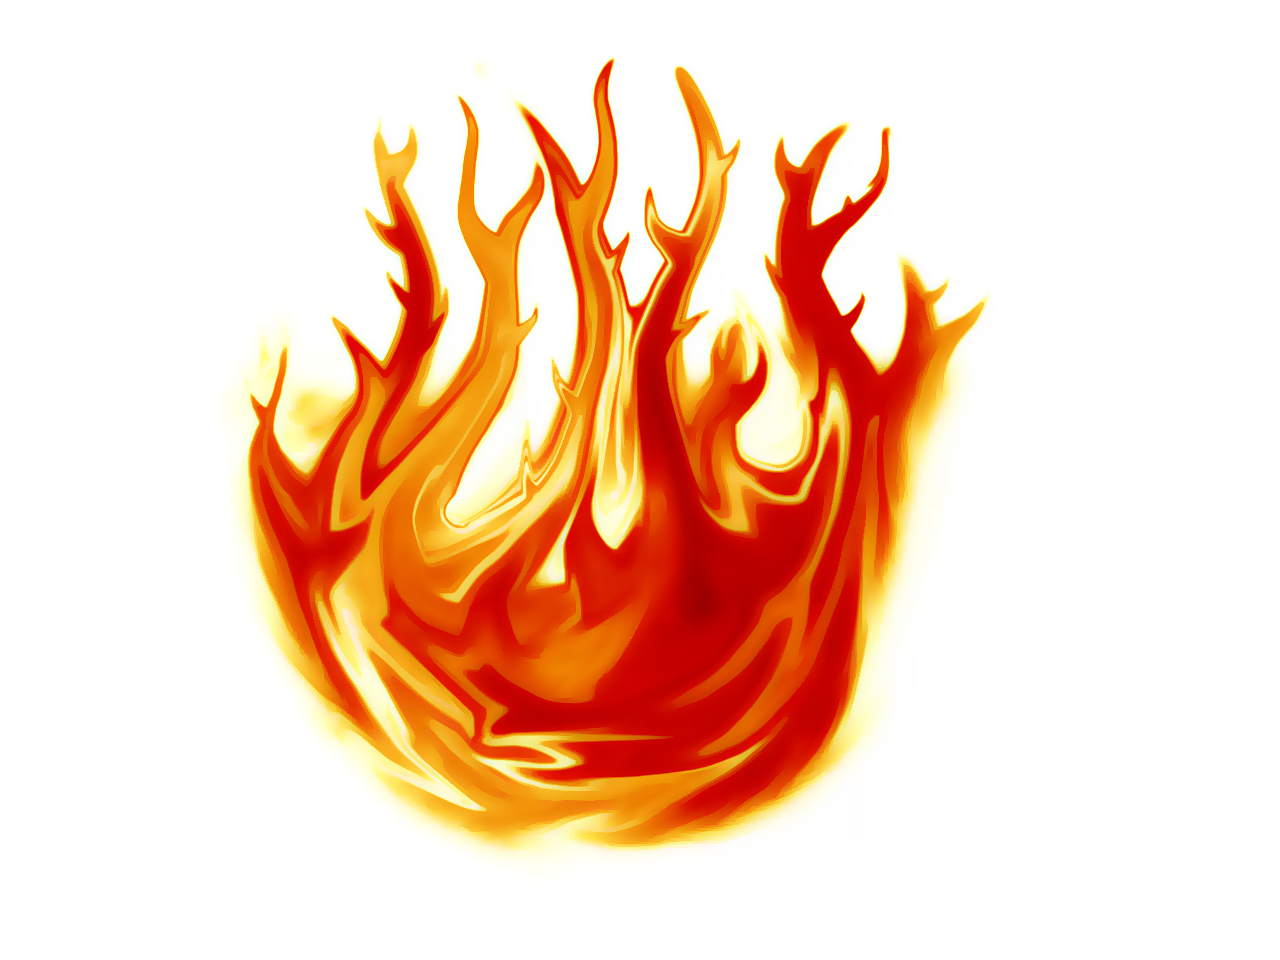 Heat clipart free fire To Draw Panda How Flames